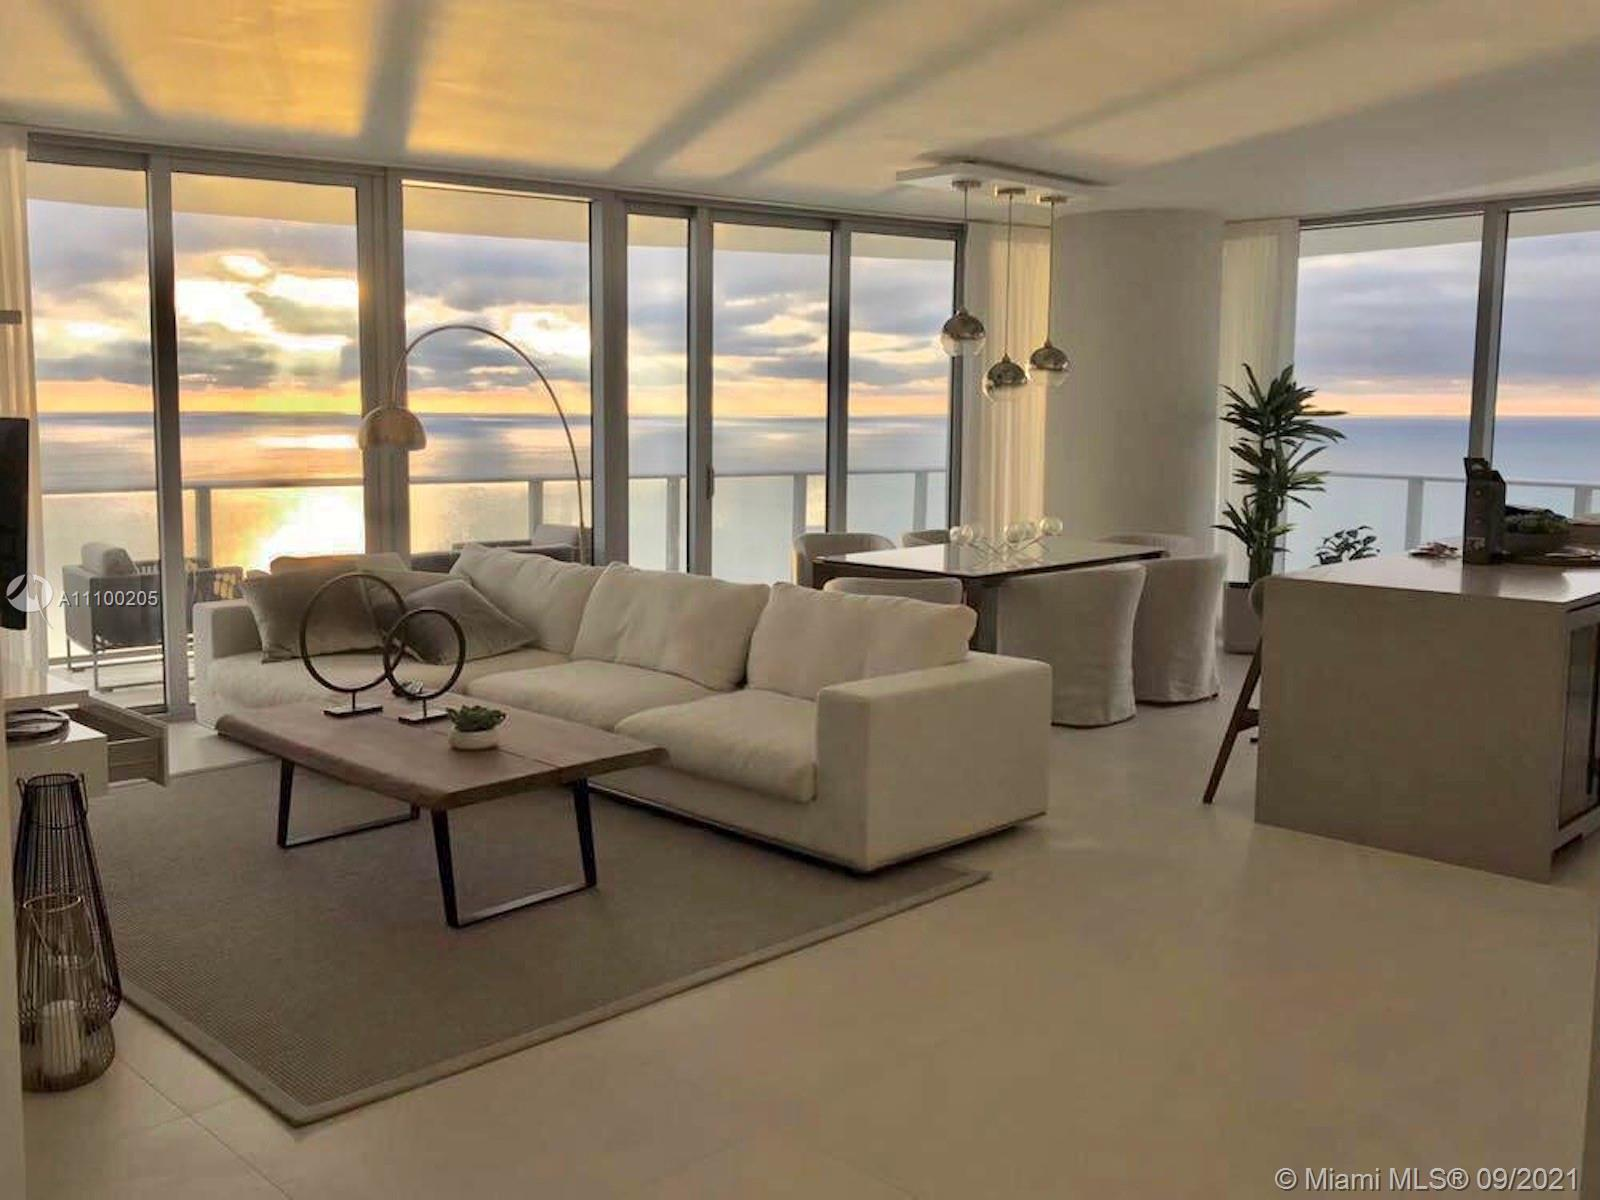 STUNNING OCEAN VIEW CONDO. FULLY FURNISHED. 3 BEDS 3 BATHS. WALKING CLOSETS. 1 PARKING , WIDE BALCON